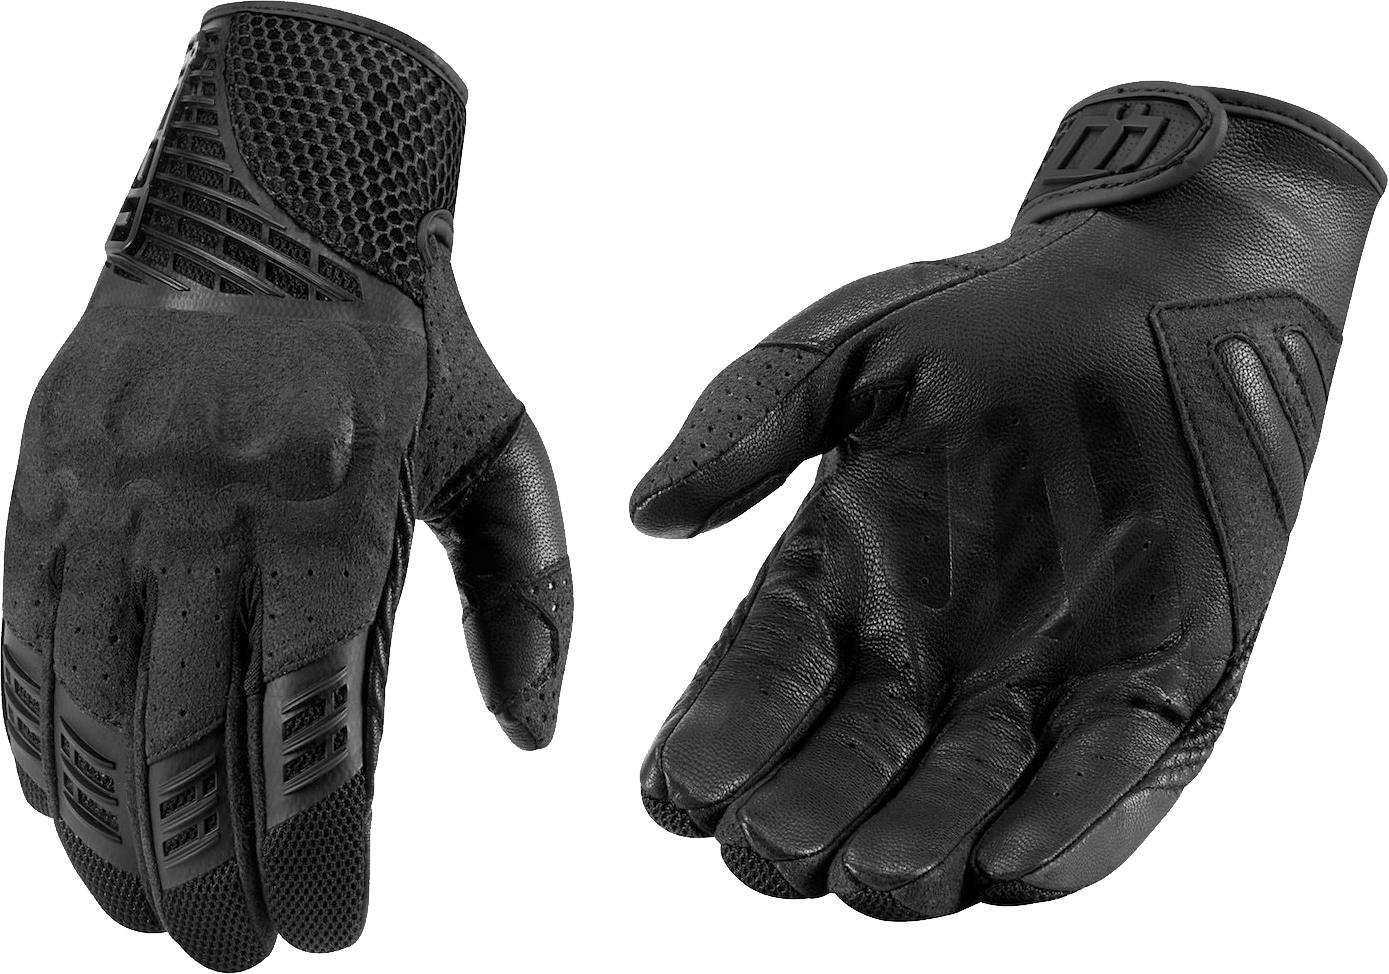 Leather gloves png image. Mittens clipart warm glove